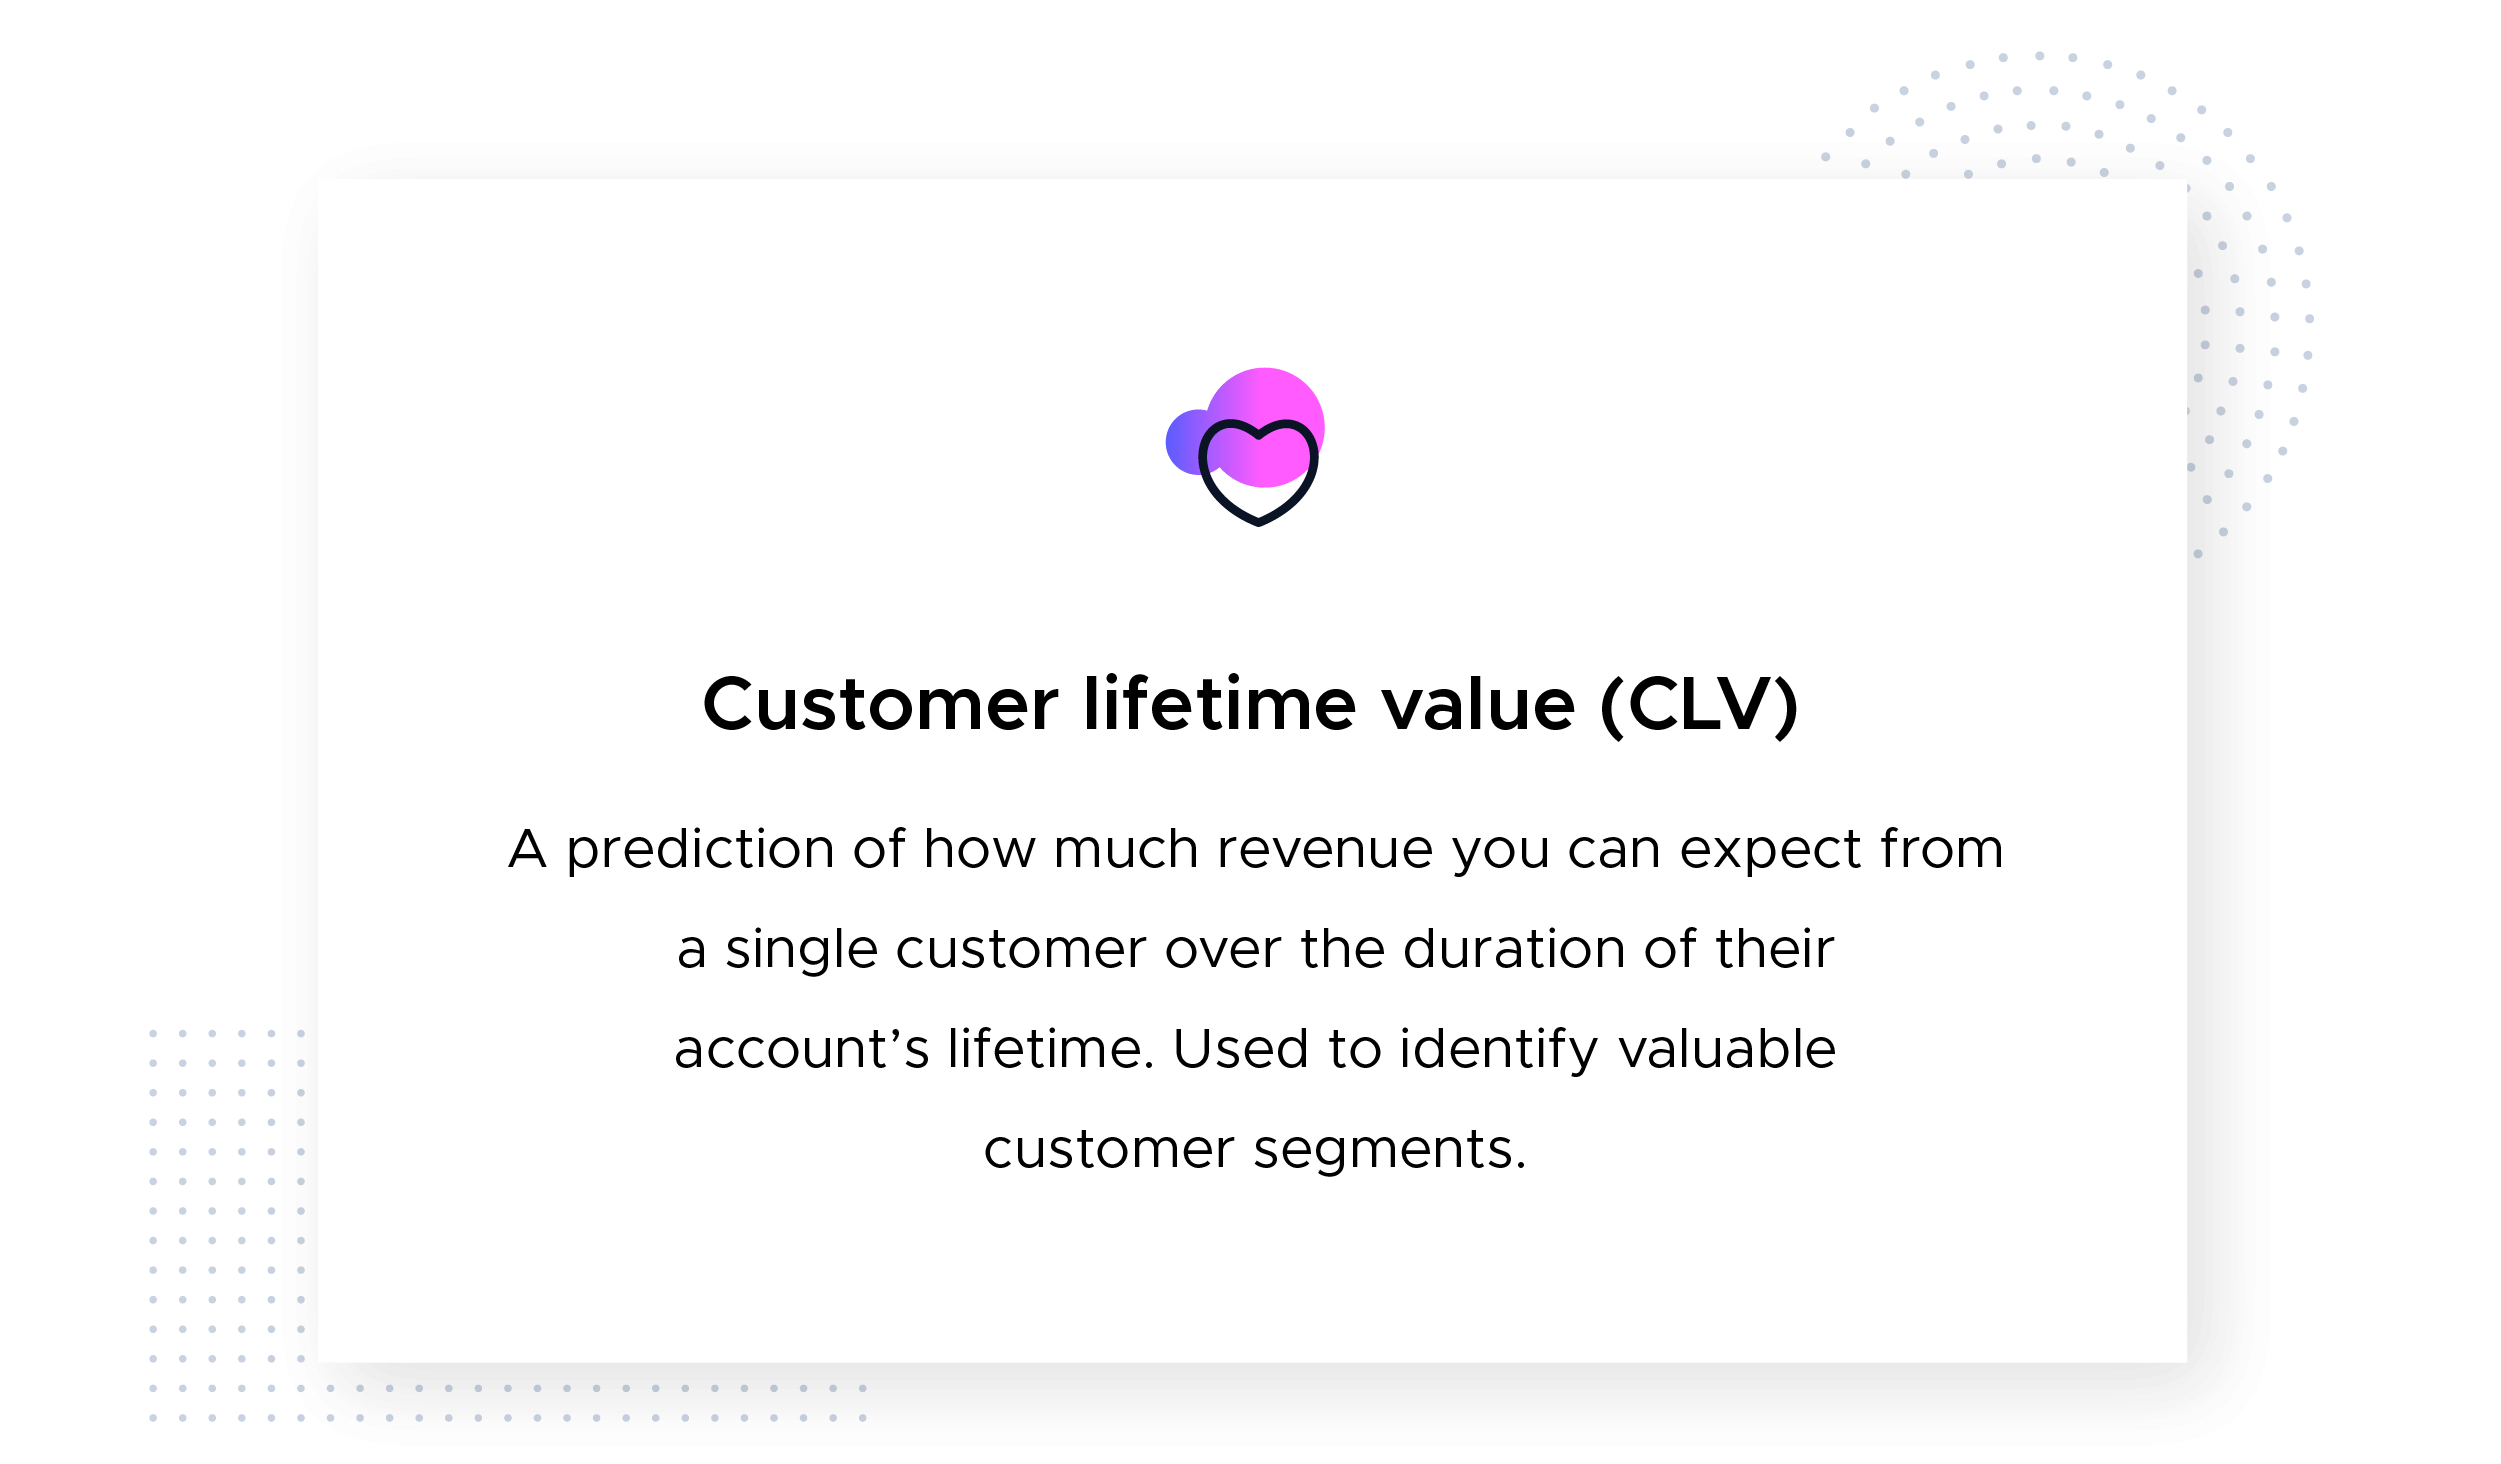 customer lifetime value (CLV or LTV) definition for SaaS companies